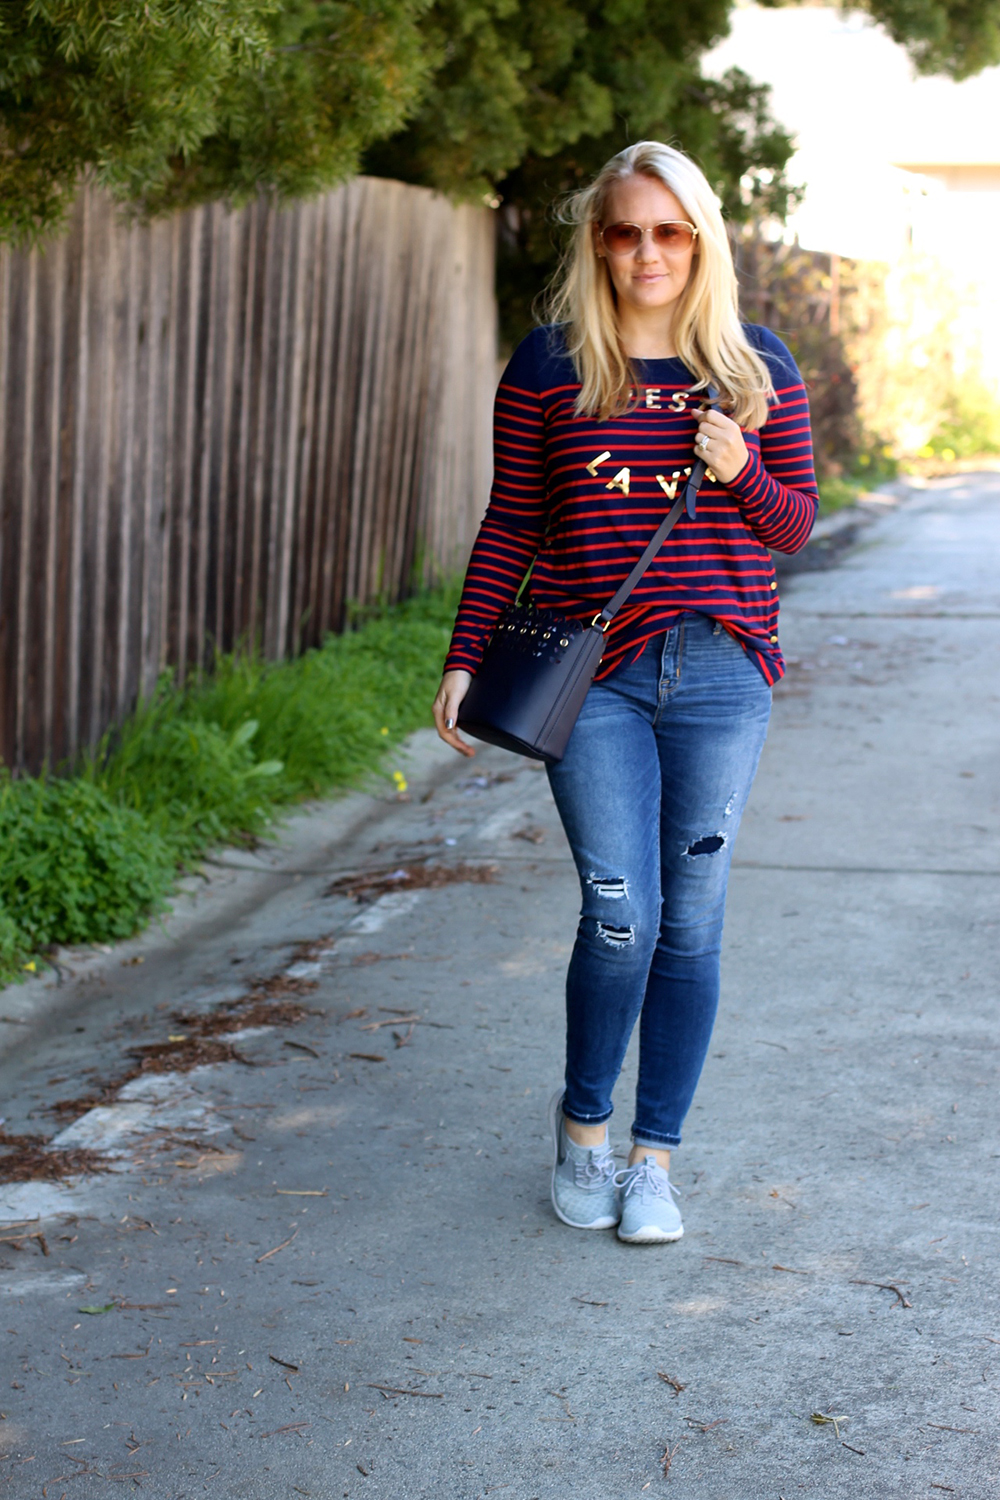 C'est La Vie-Everyday Mom Style-Mom Uniform-Nursing Top-Outfit Inspiration-Bay Area Fashion Blogger-Have Need Want 9